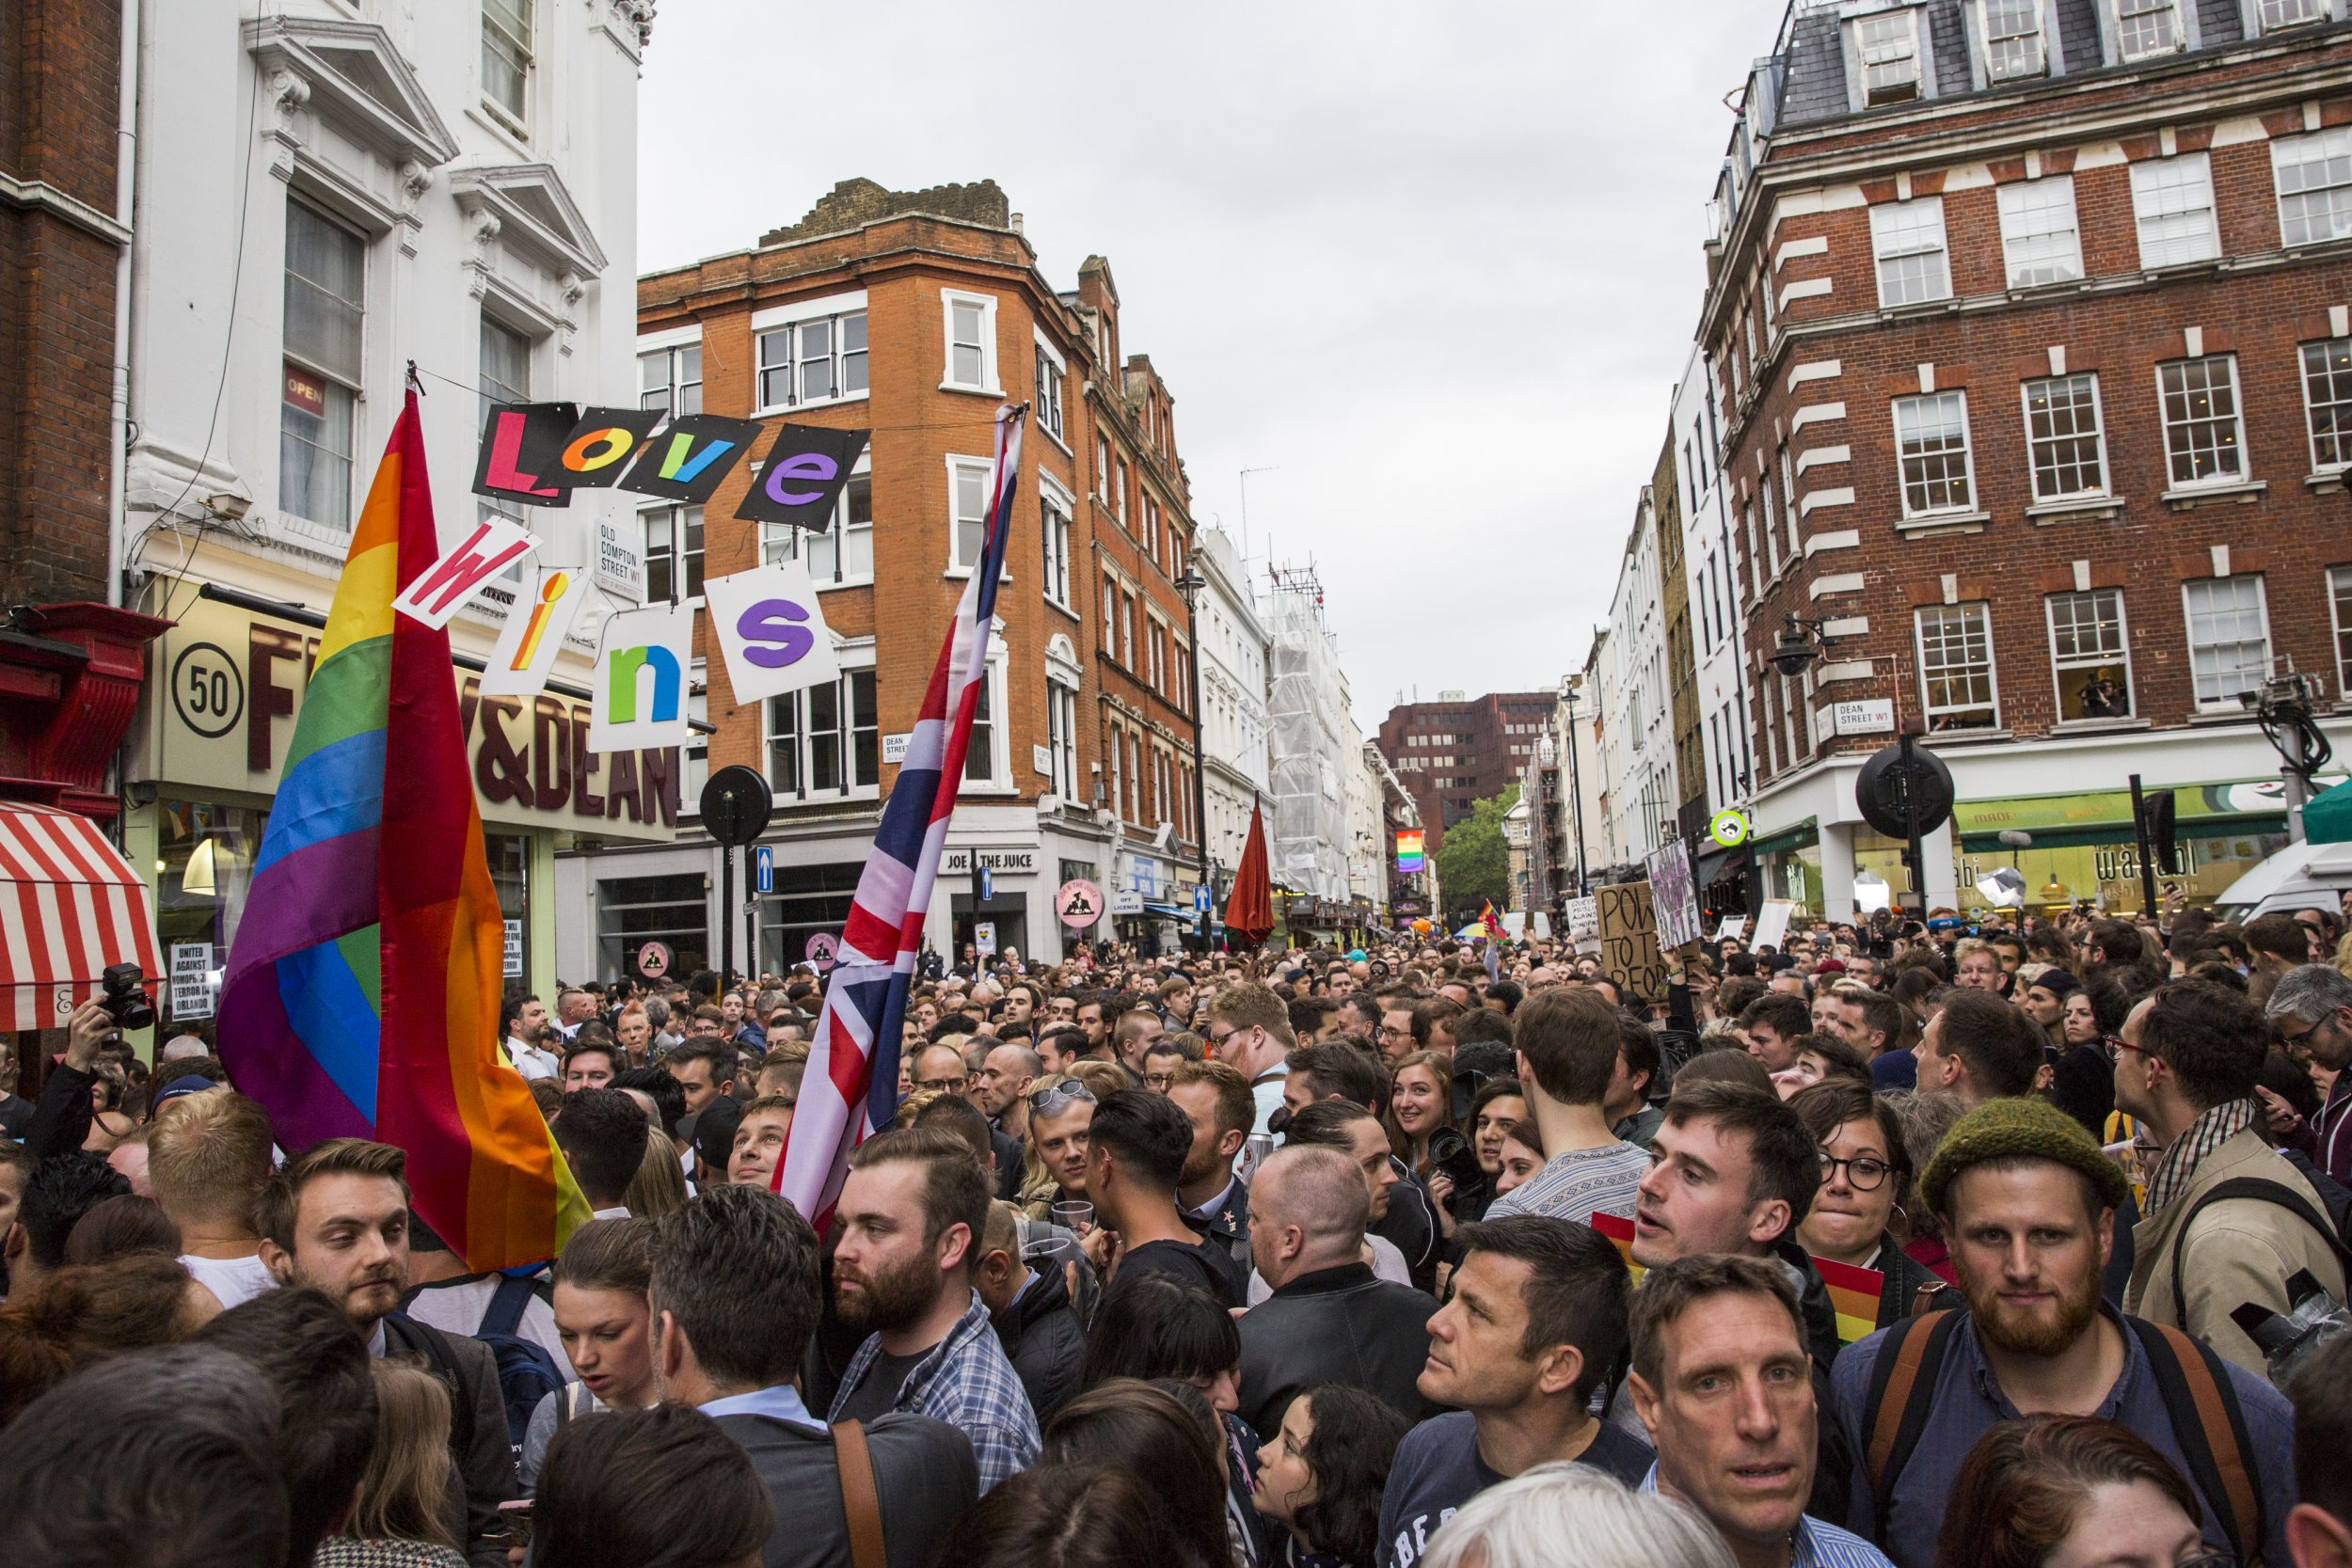 London's Orlando vigil in Old Compton Street